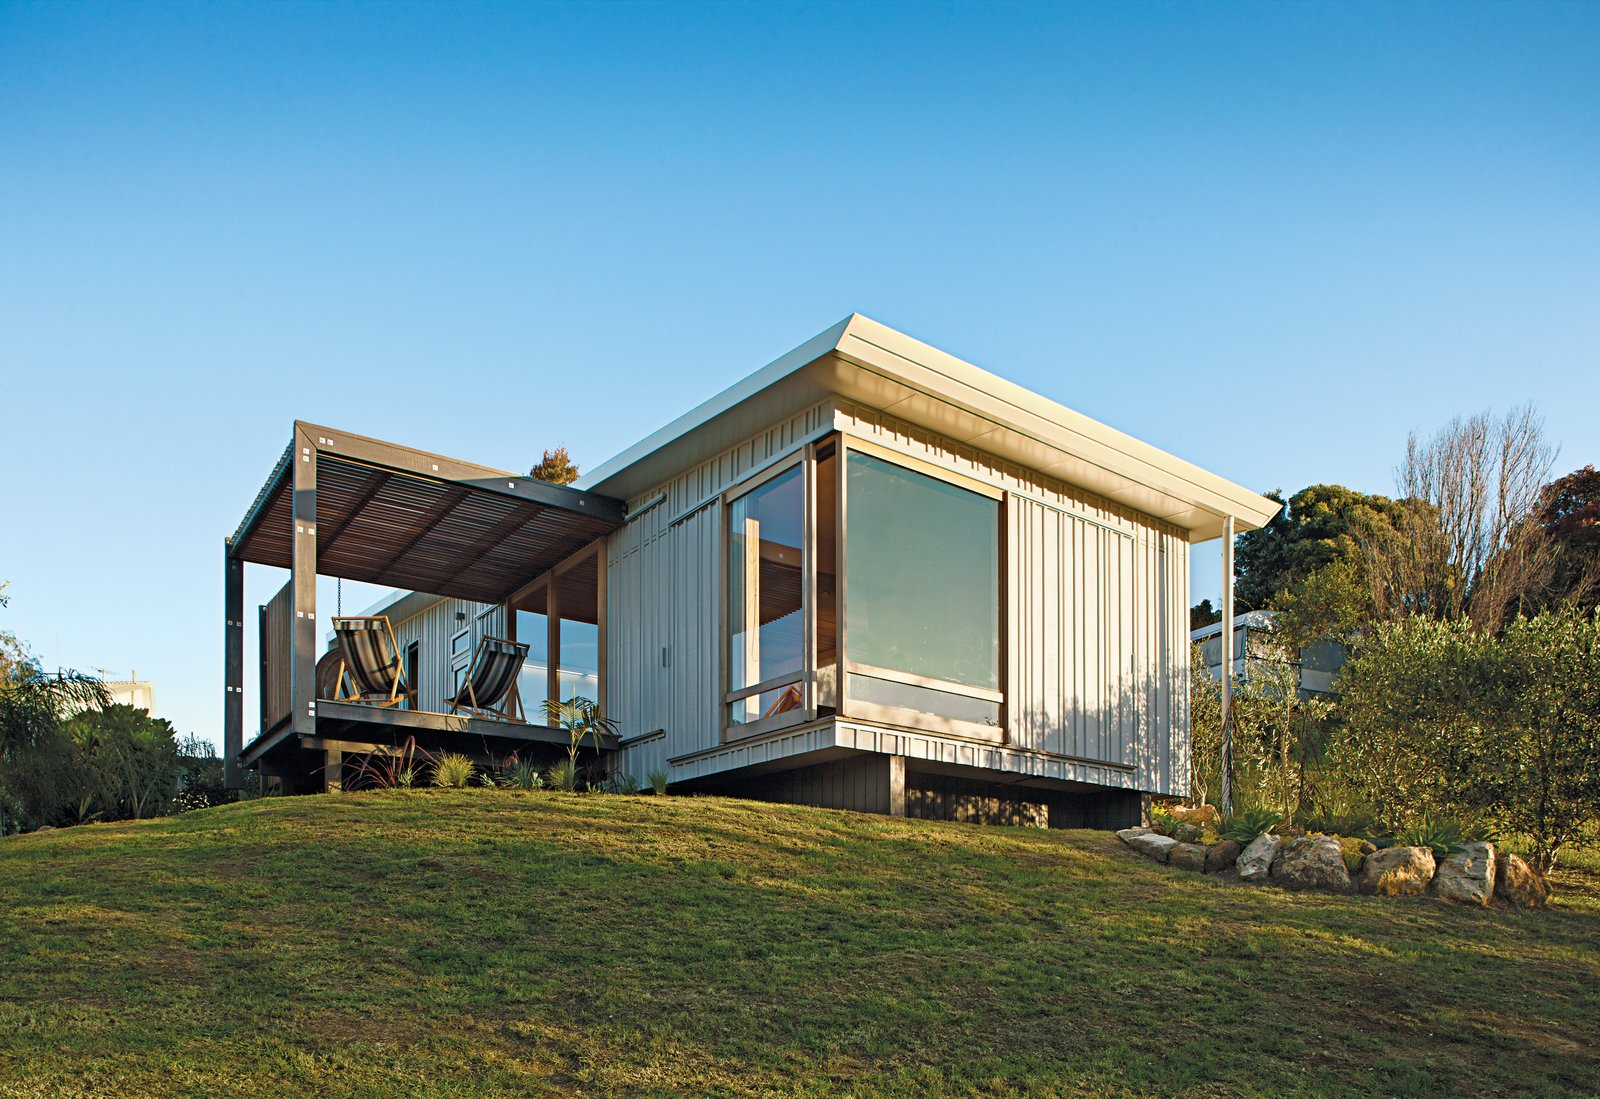 A compact prefab vacation home in the seaside community of Onemana Beach is clad in plywood and vertical timber battens finished in Resene's Lumbersider paint in Foam. Tagged: Exterior, Wood Siding Material, House, Prefab Building Type, and Flat RoofLine.  Photo 2 of 7 in A Compact Prefab Vacation Home